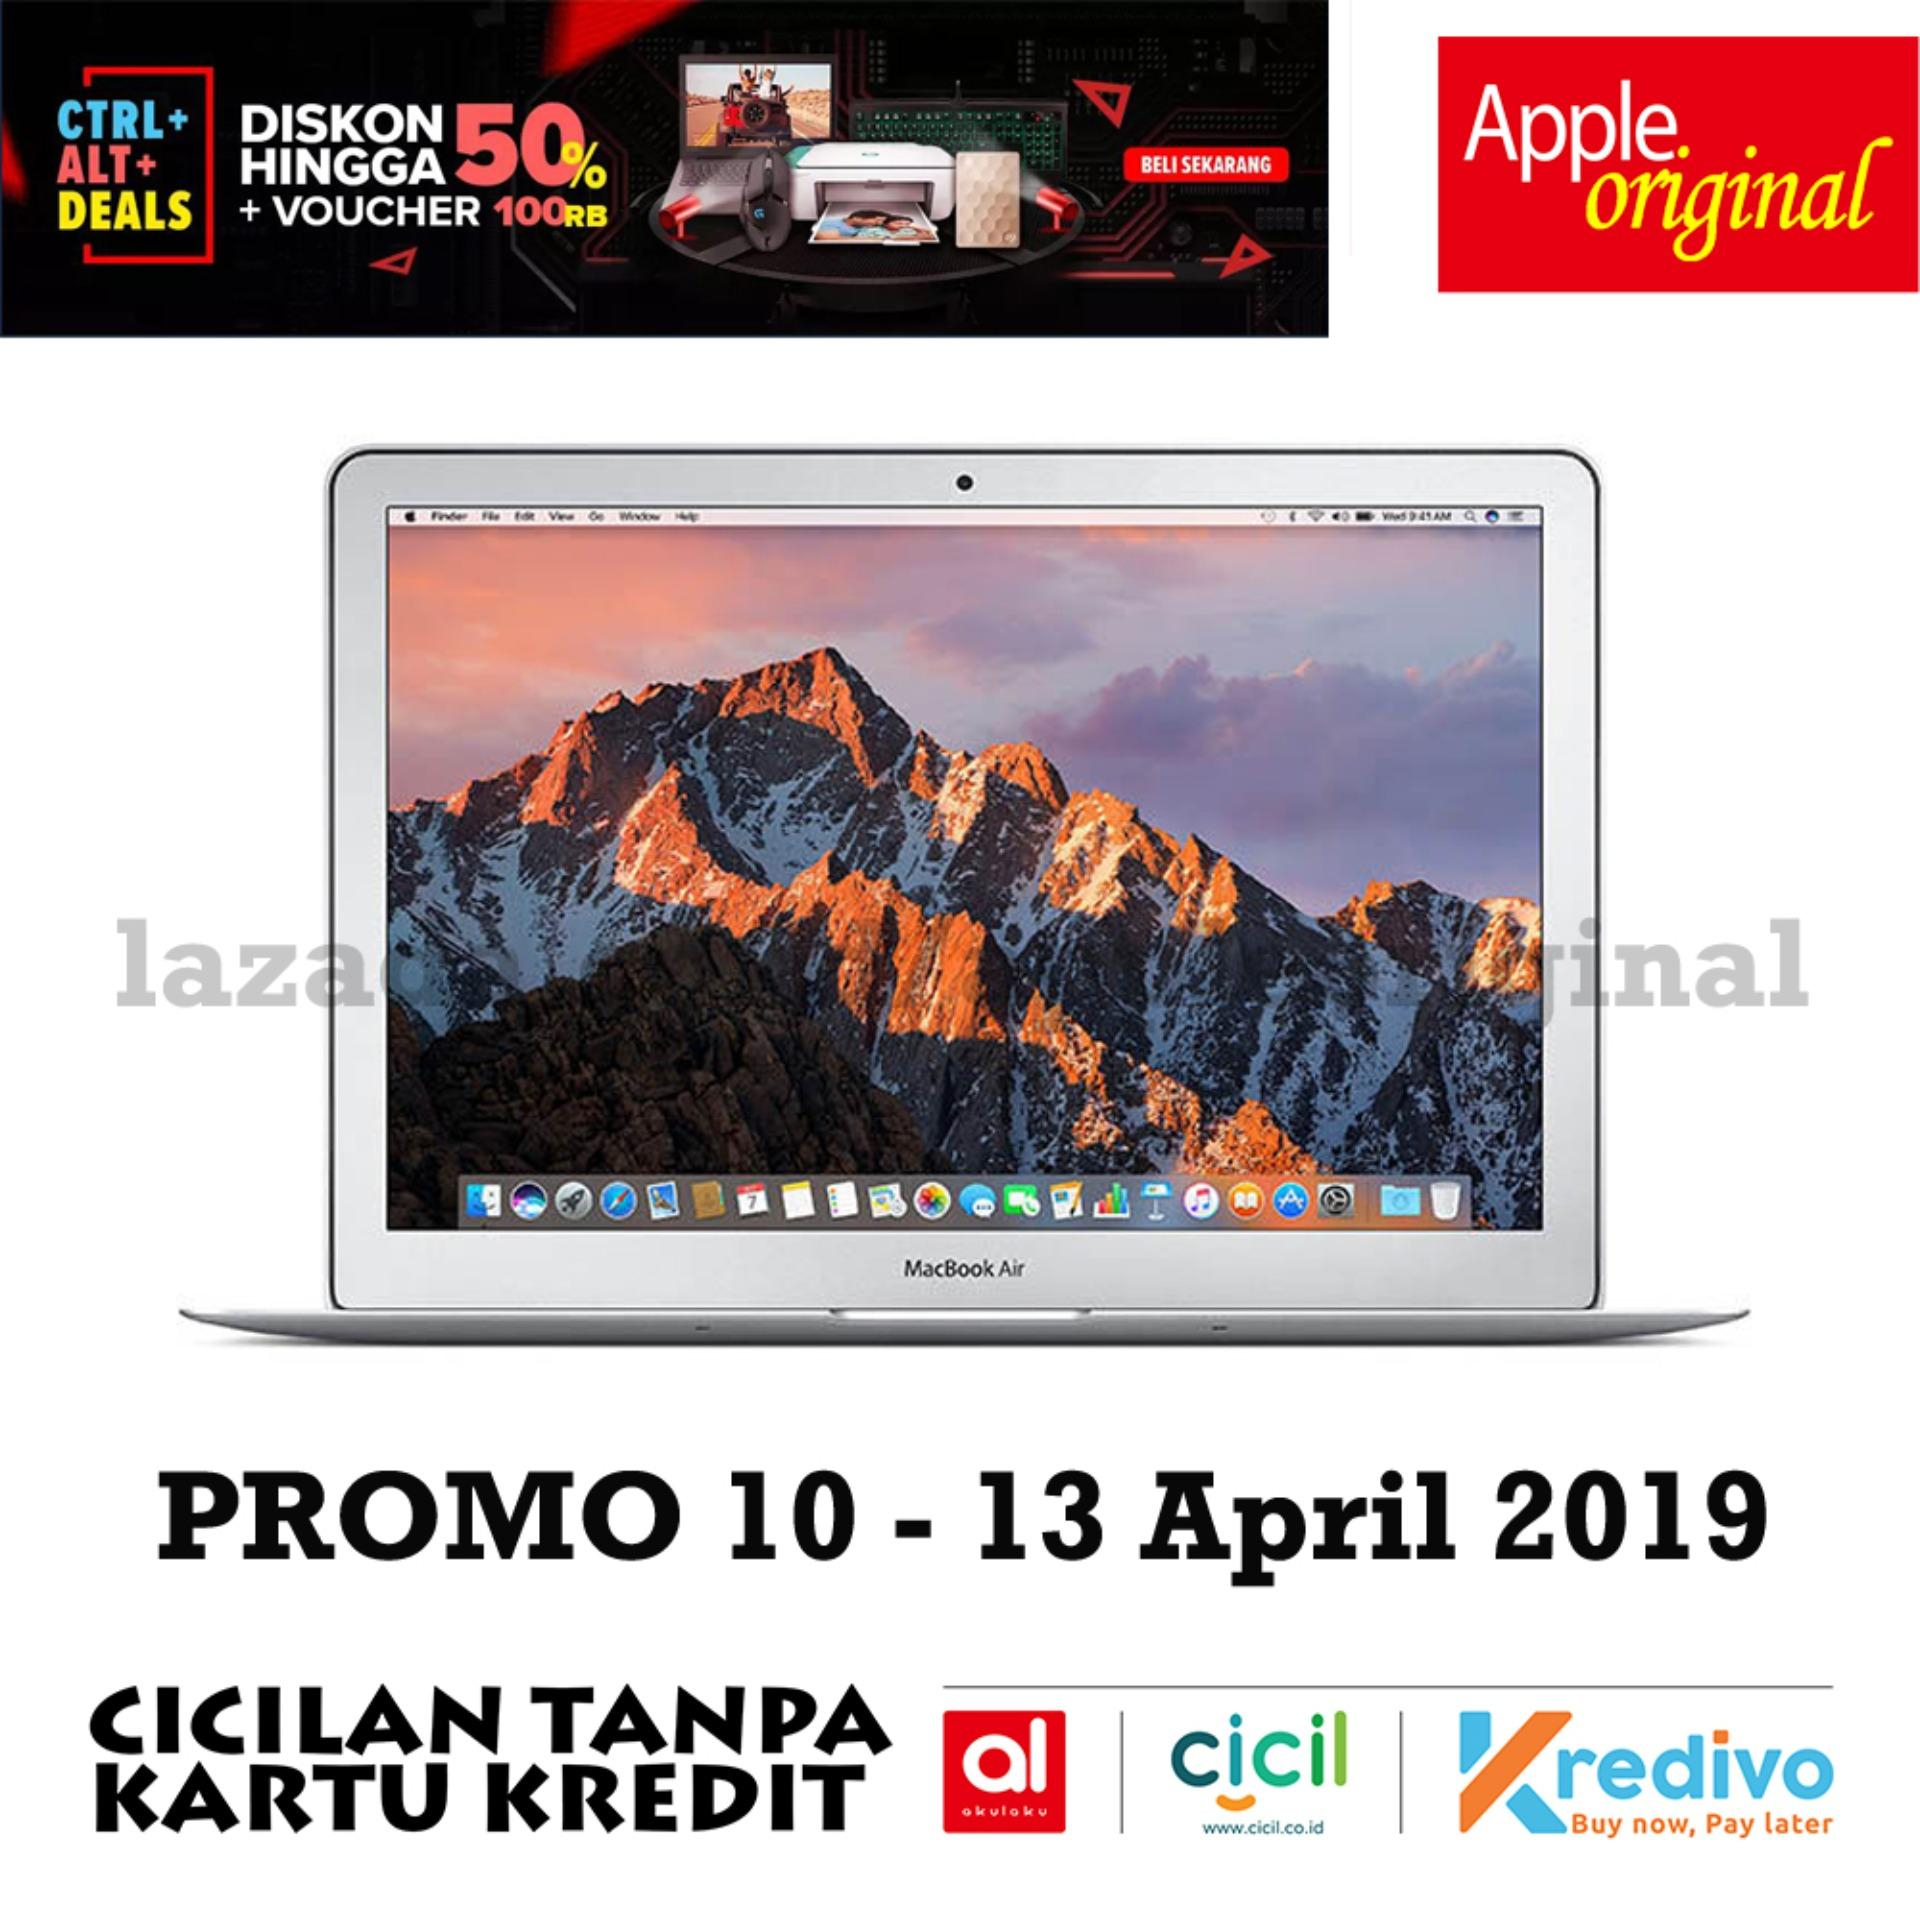 https://www.lazada.co.id/products/apple-macbook-air-mqd32-upgrade-2017-22ghz-intel-core-i7-8gb-ram-13-inch-128gb-silver-i425258538-s487635396.html